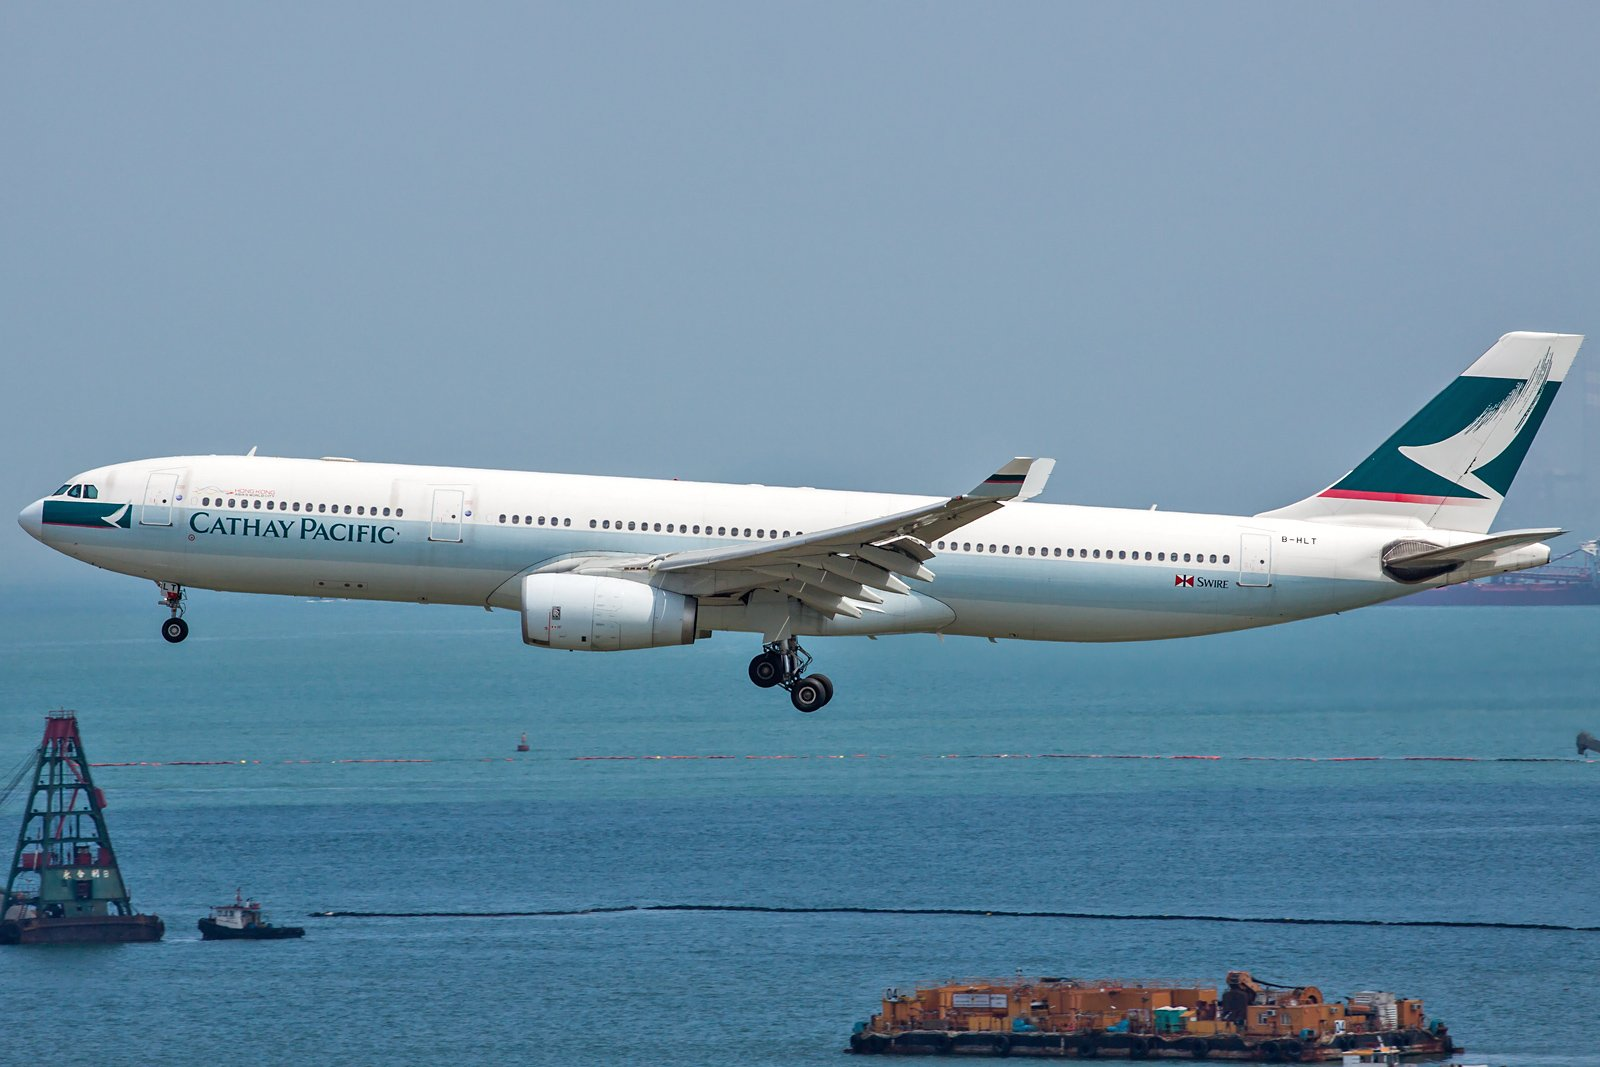 Cathay Pacific Airbus A330-343 B-HLT